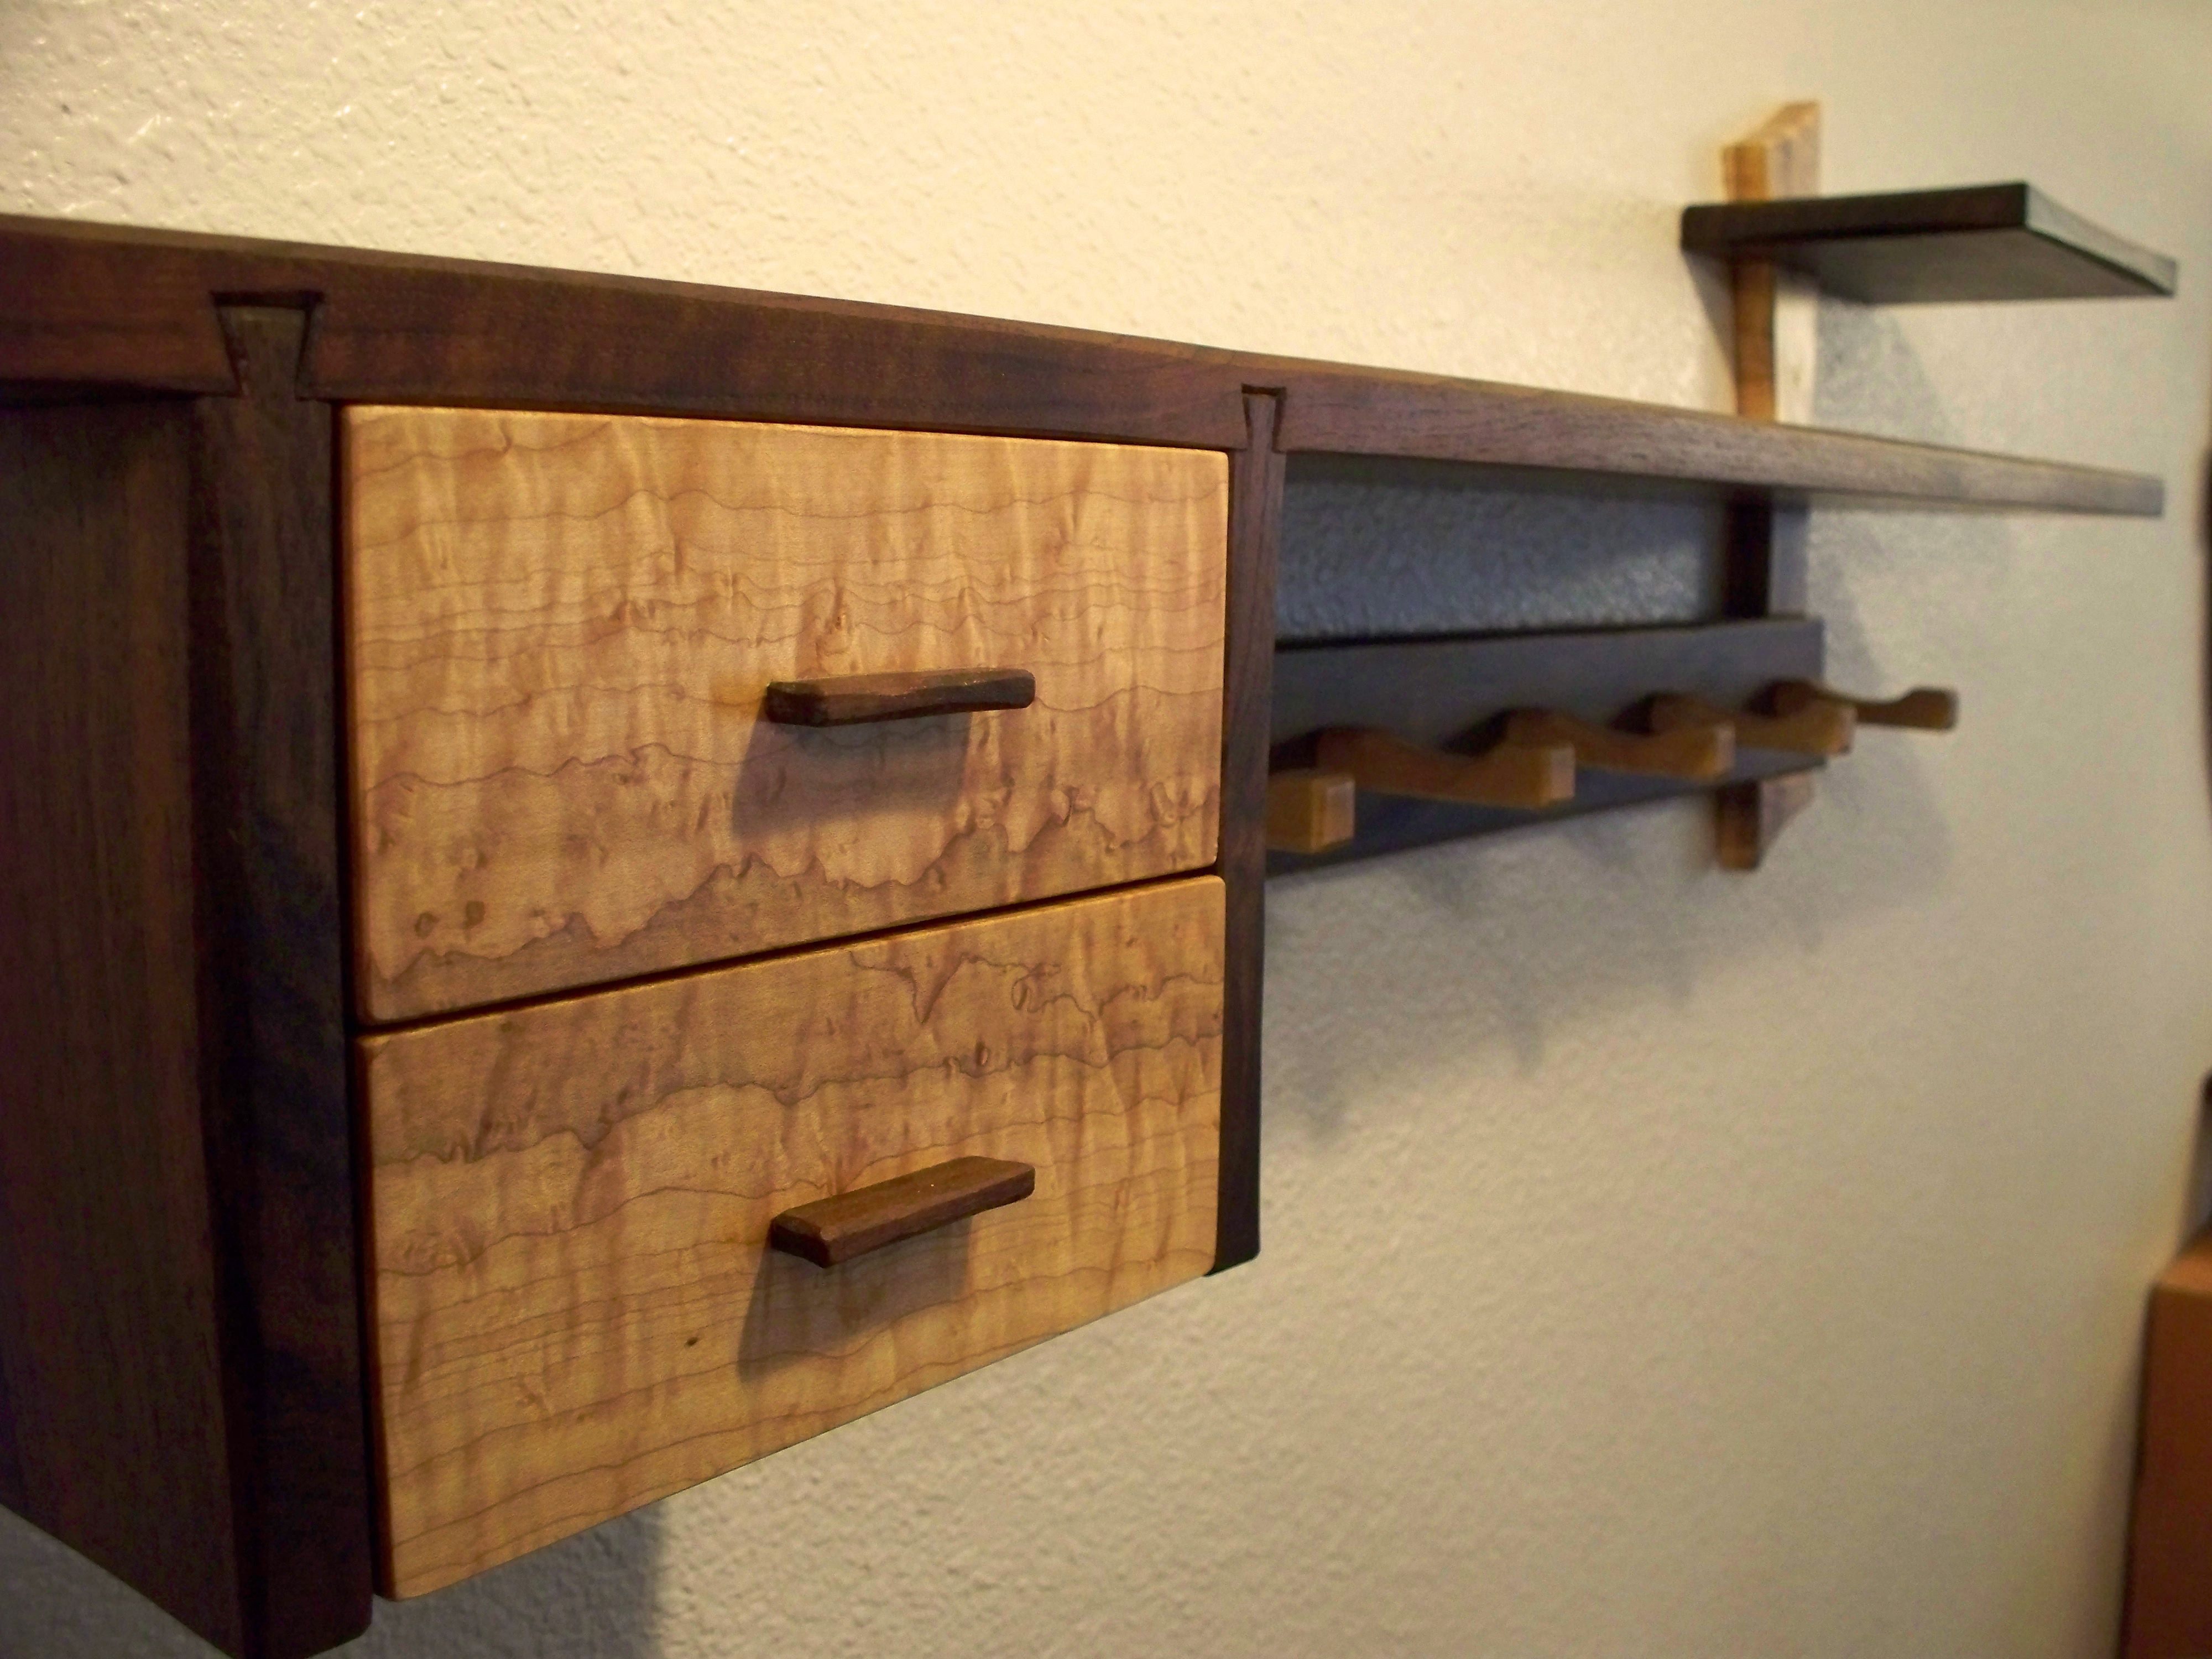 Furniture Old And Vintage Diy Wood Mantel Floating Wall Shelf With Drawer Hooks For